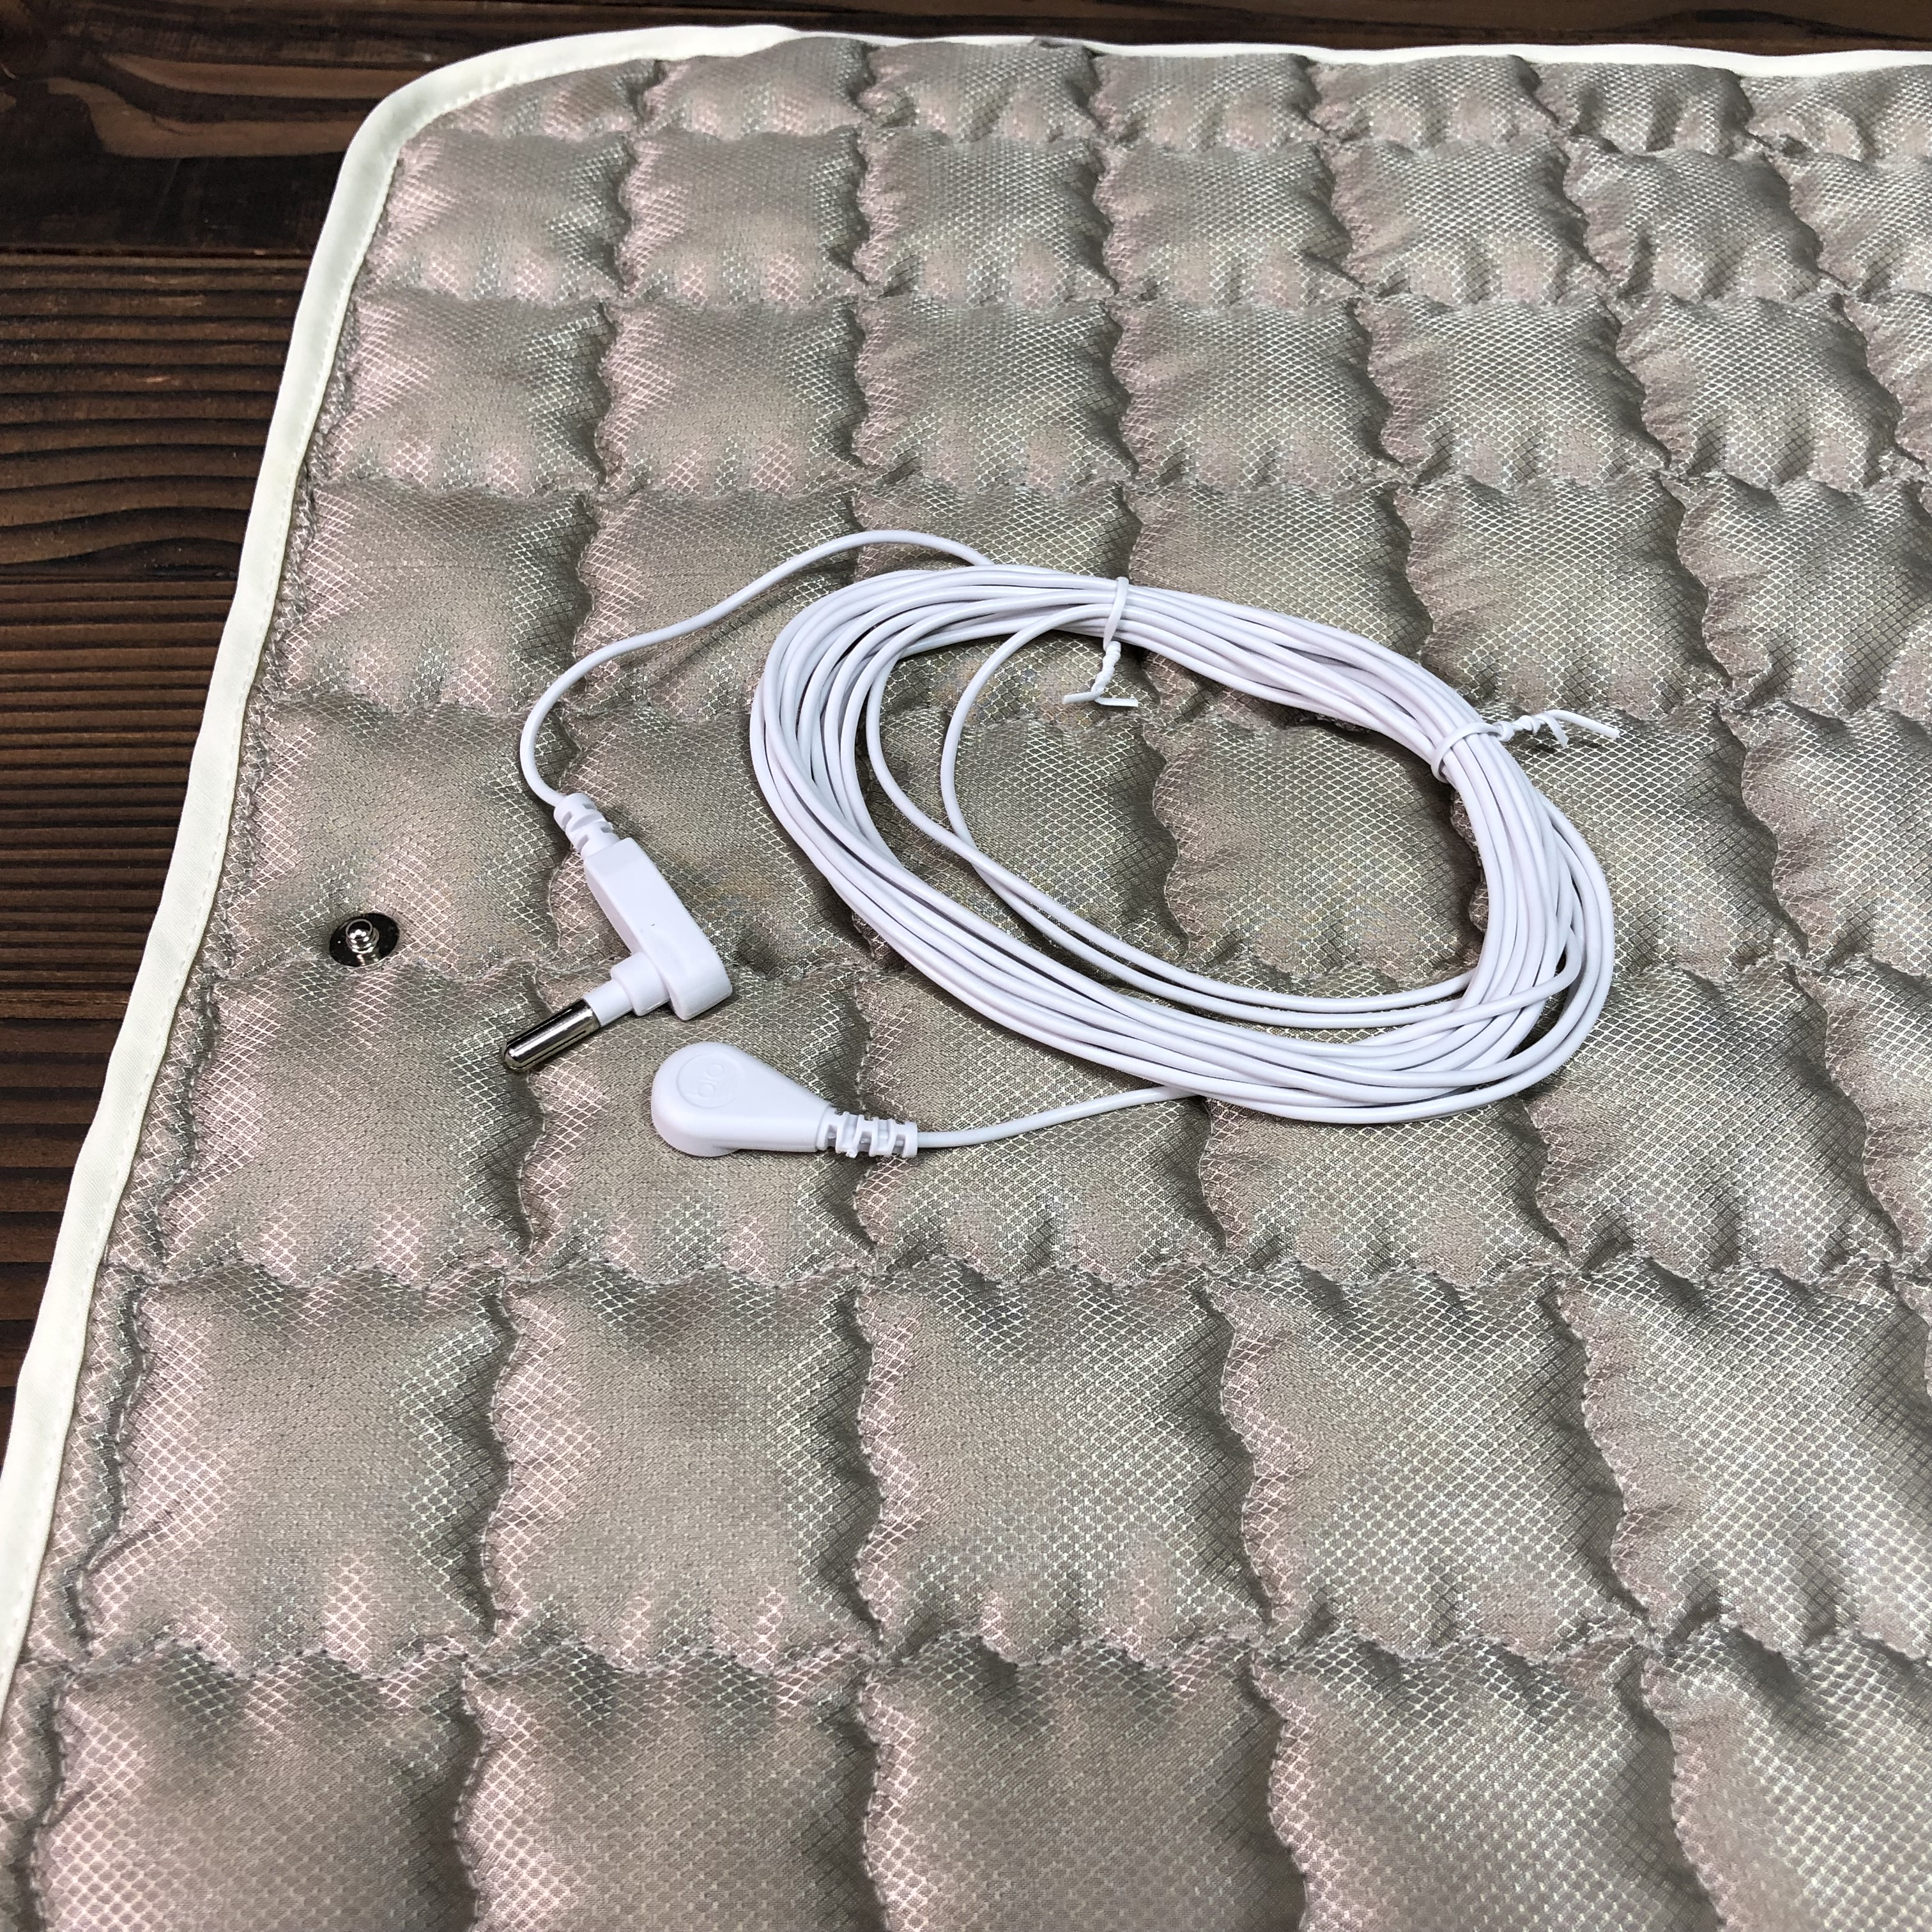 Grounded Plush Silver Sleep Pad Seat Pad Connect To The Earth Remove The Radiation EMF Protection